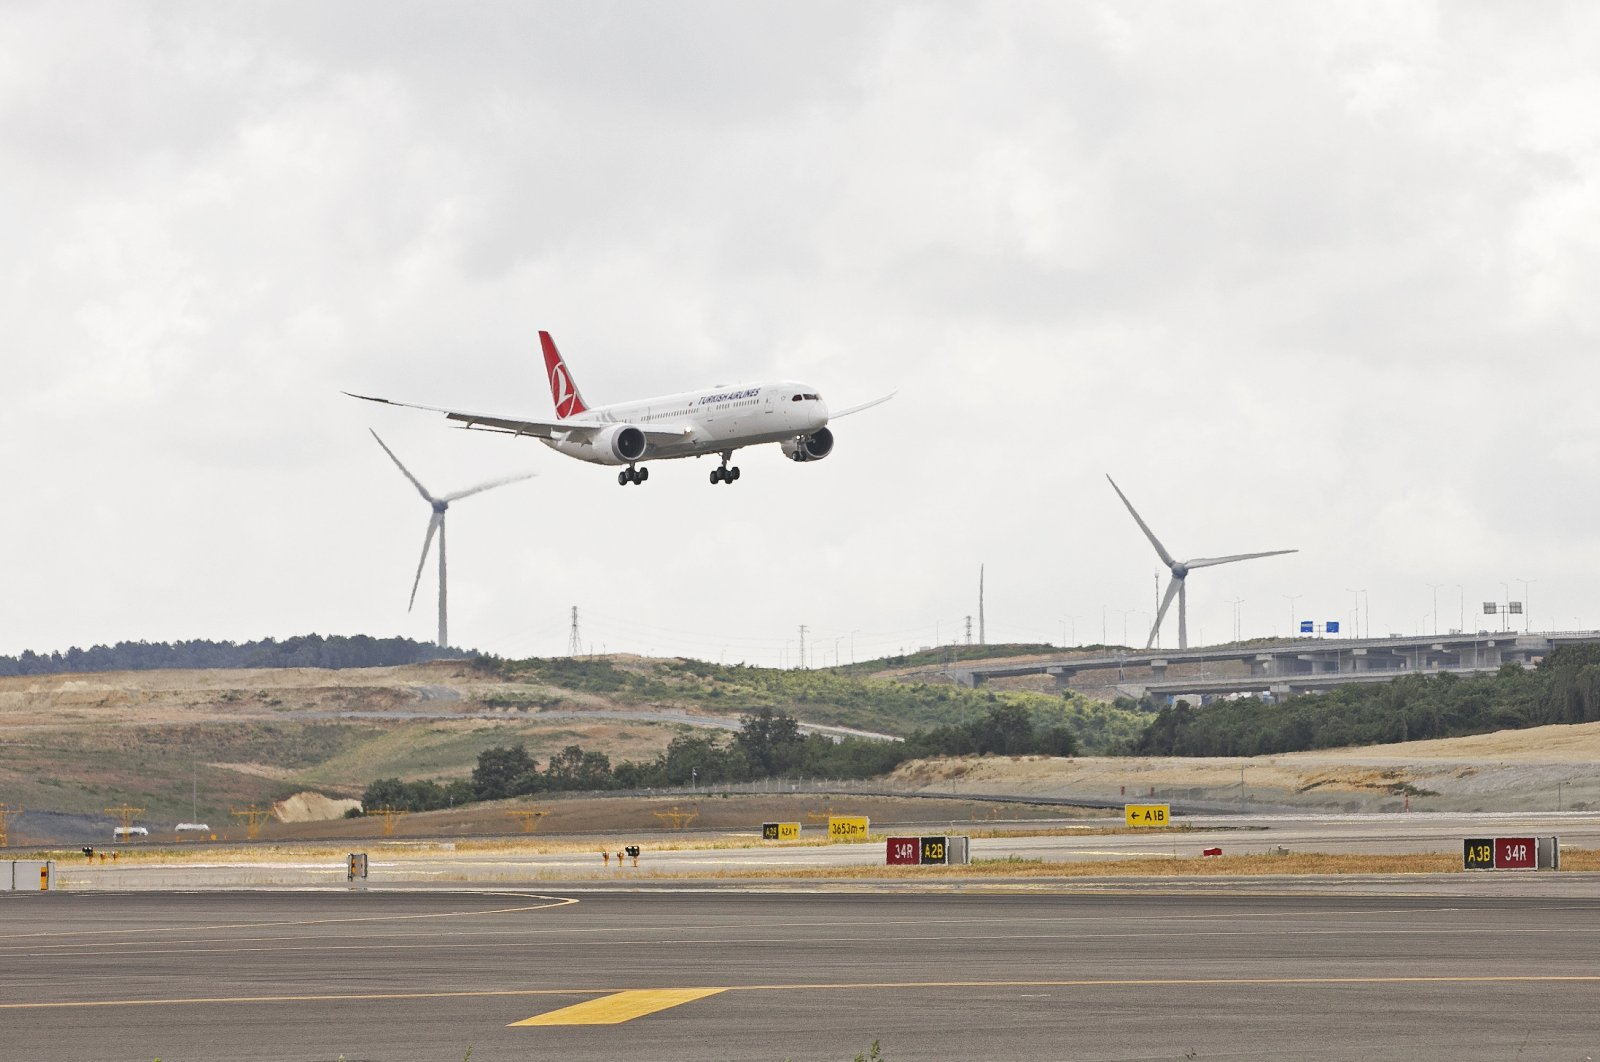 A Turkish Airlines aircraft is seen landing at Istanbul Airport.